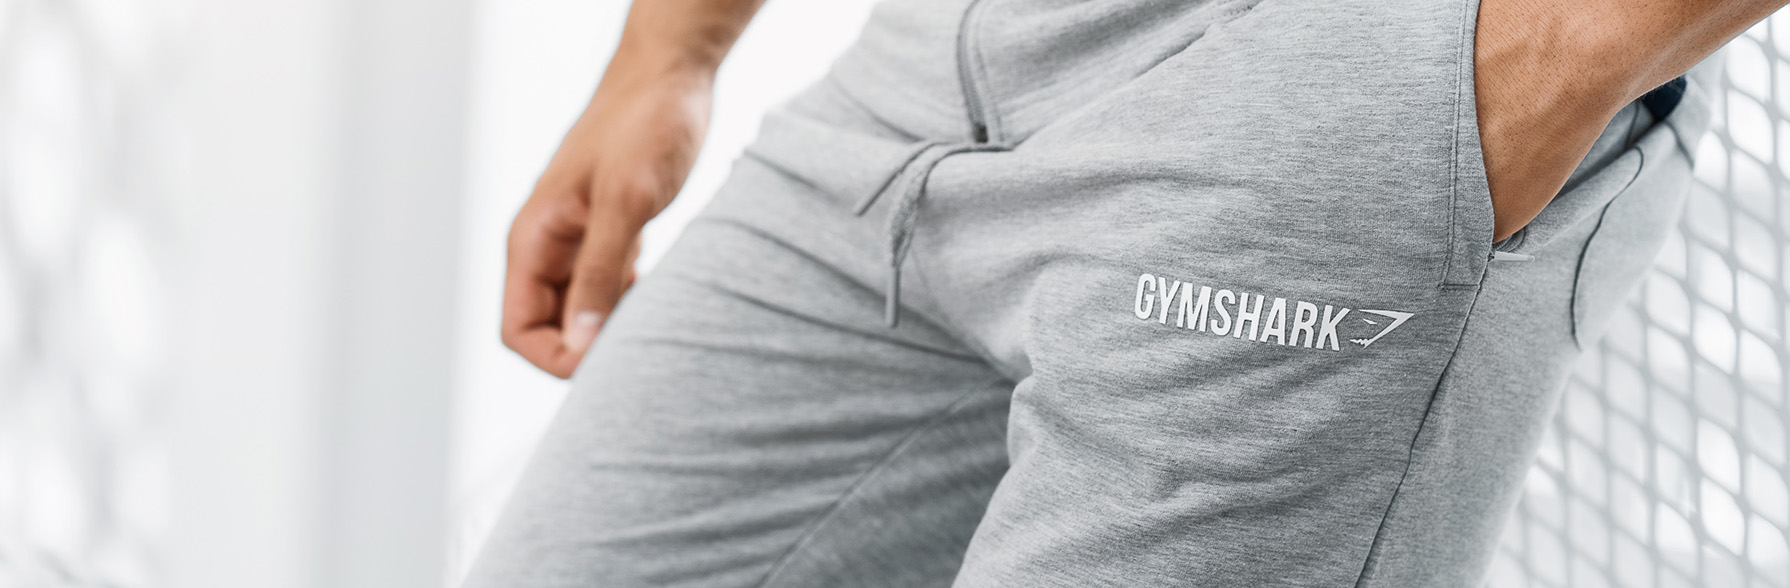 Gymshark Fit Tapered Bottoms Review